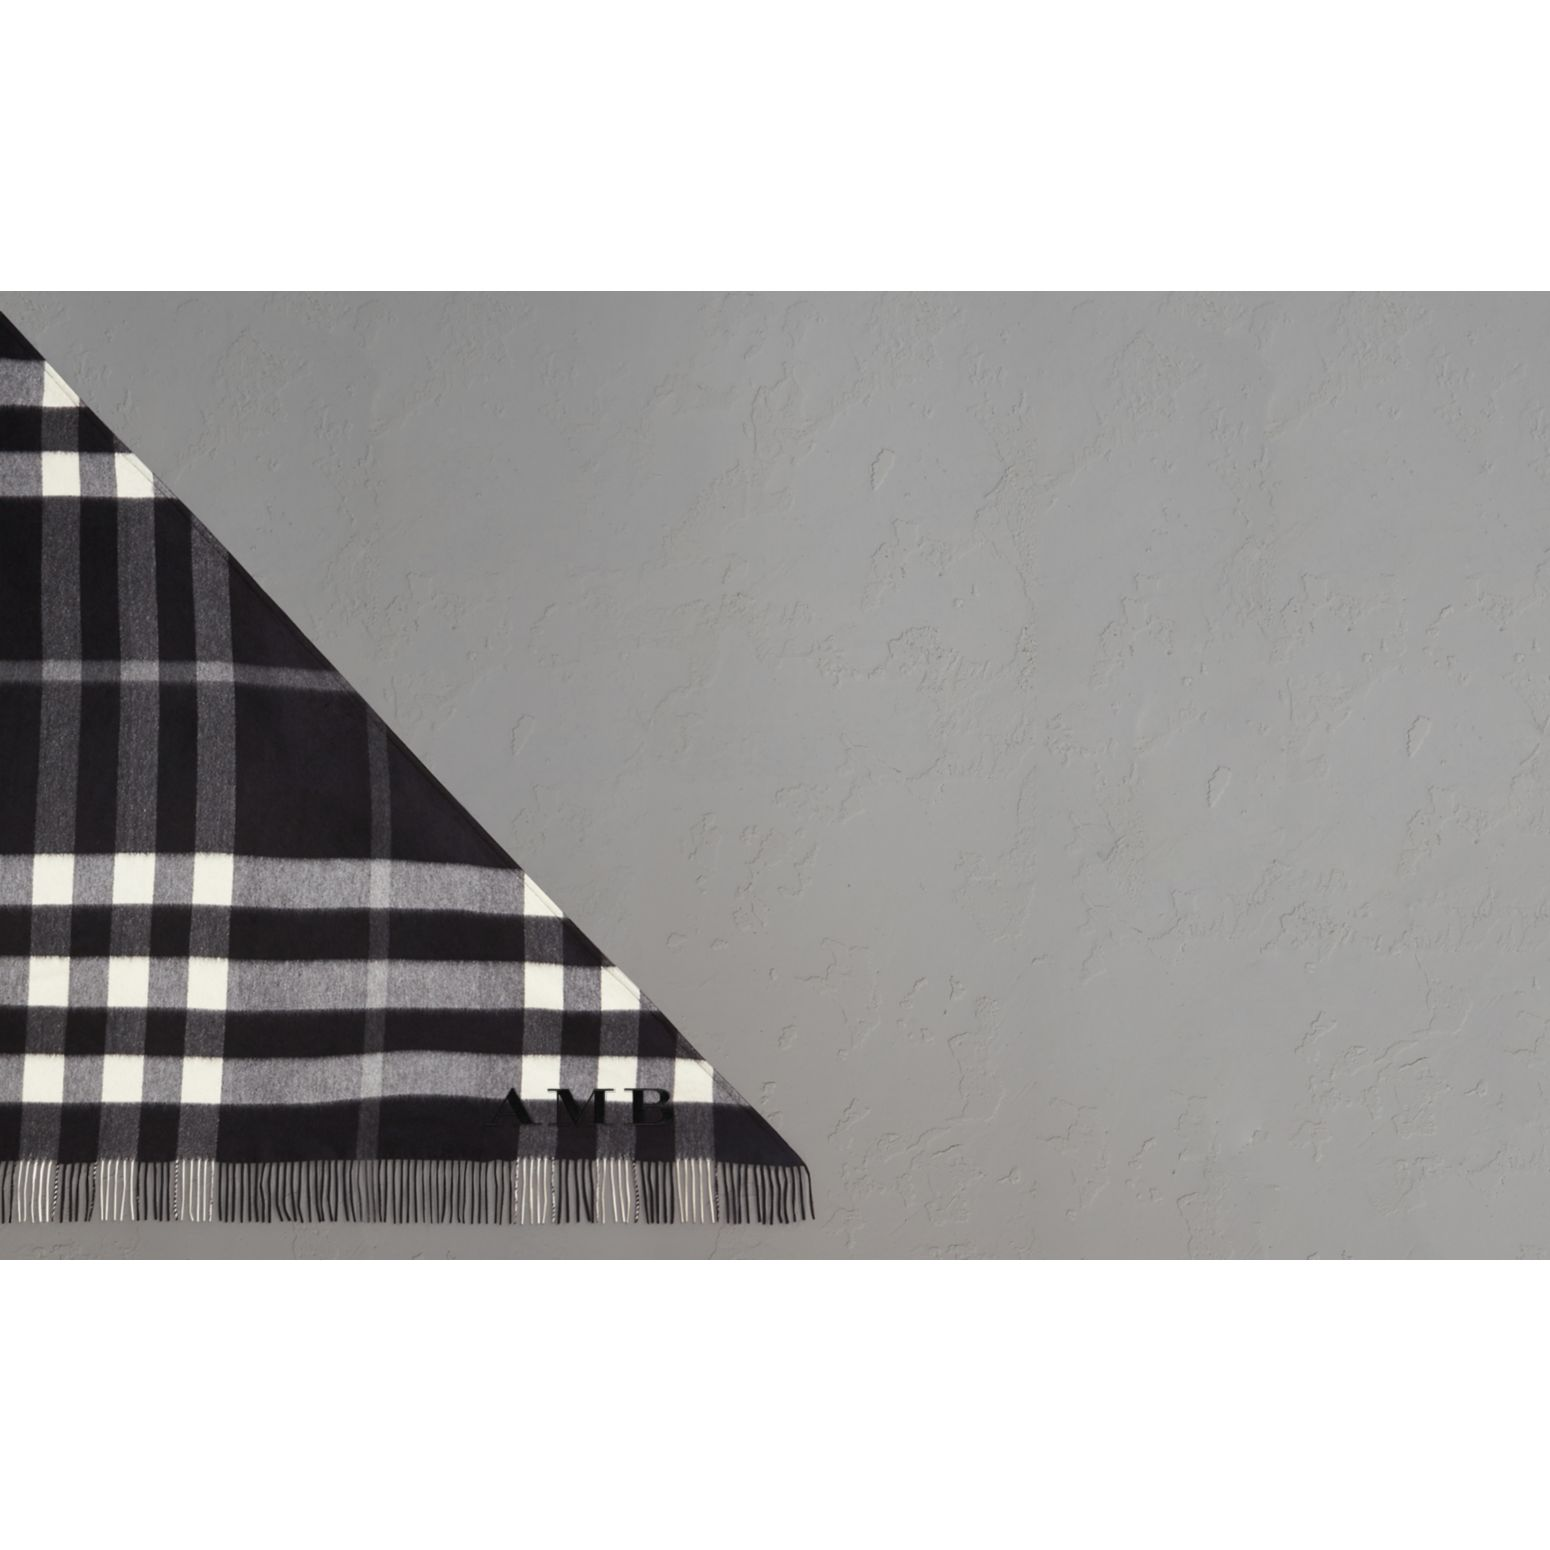 The Burberry Bandana in Check Cashmere in Black | Burberry United Kingdom - gallery image 2